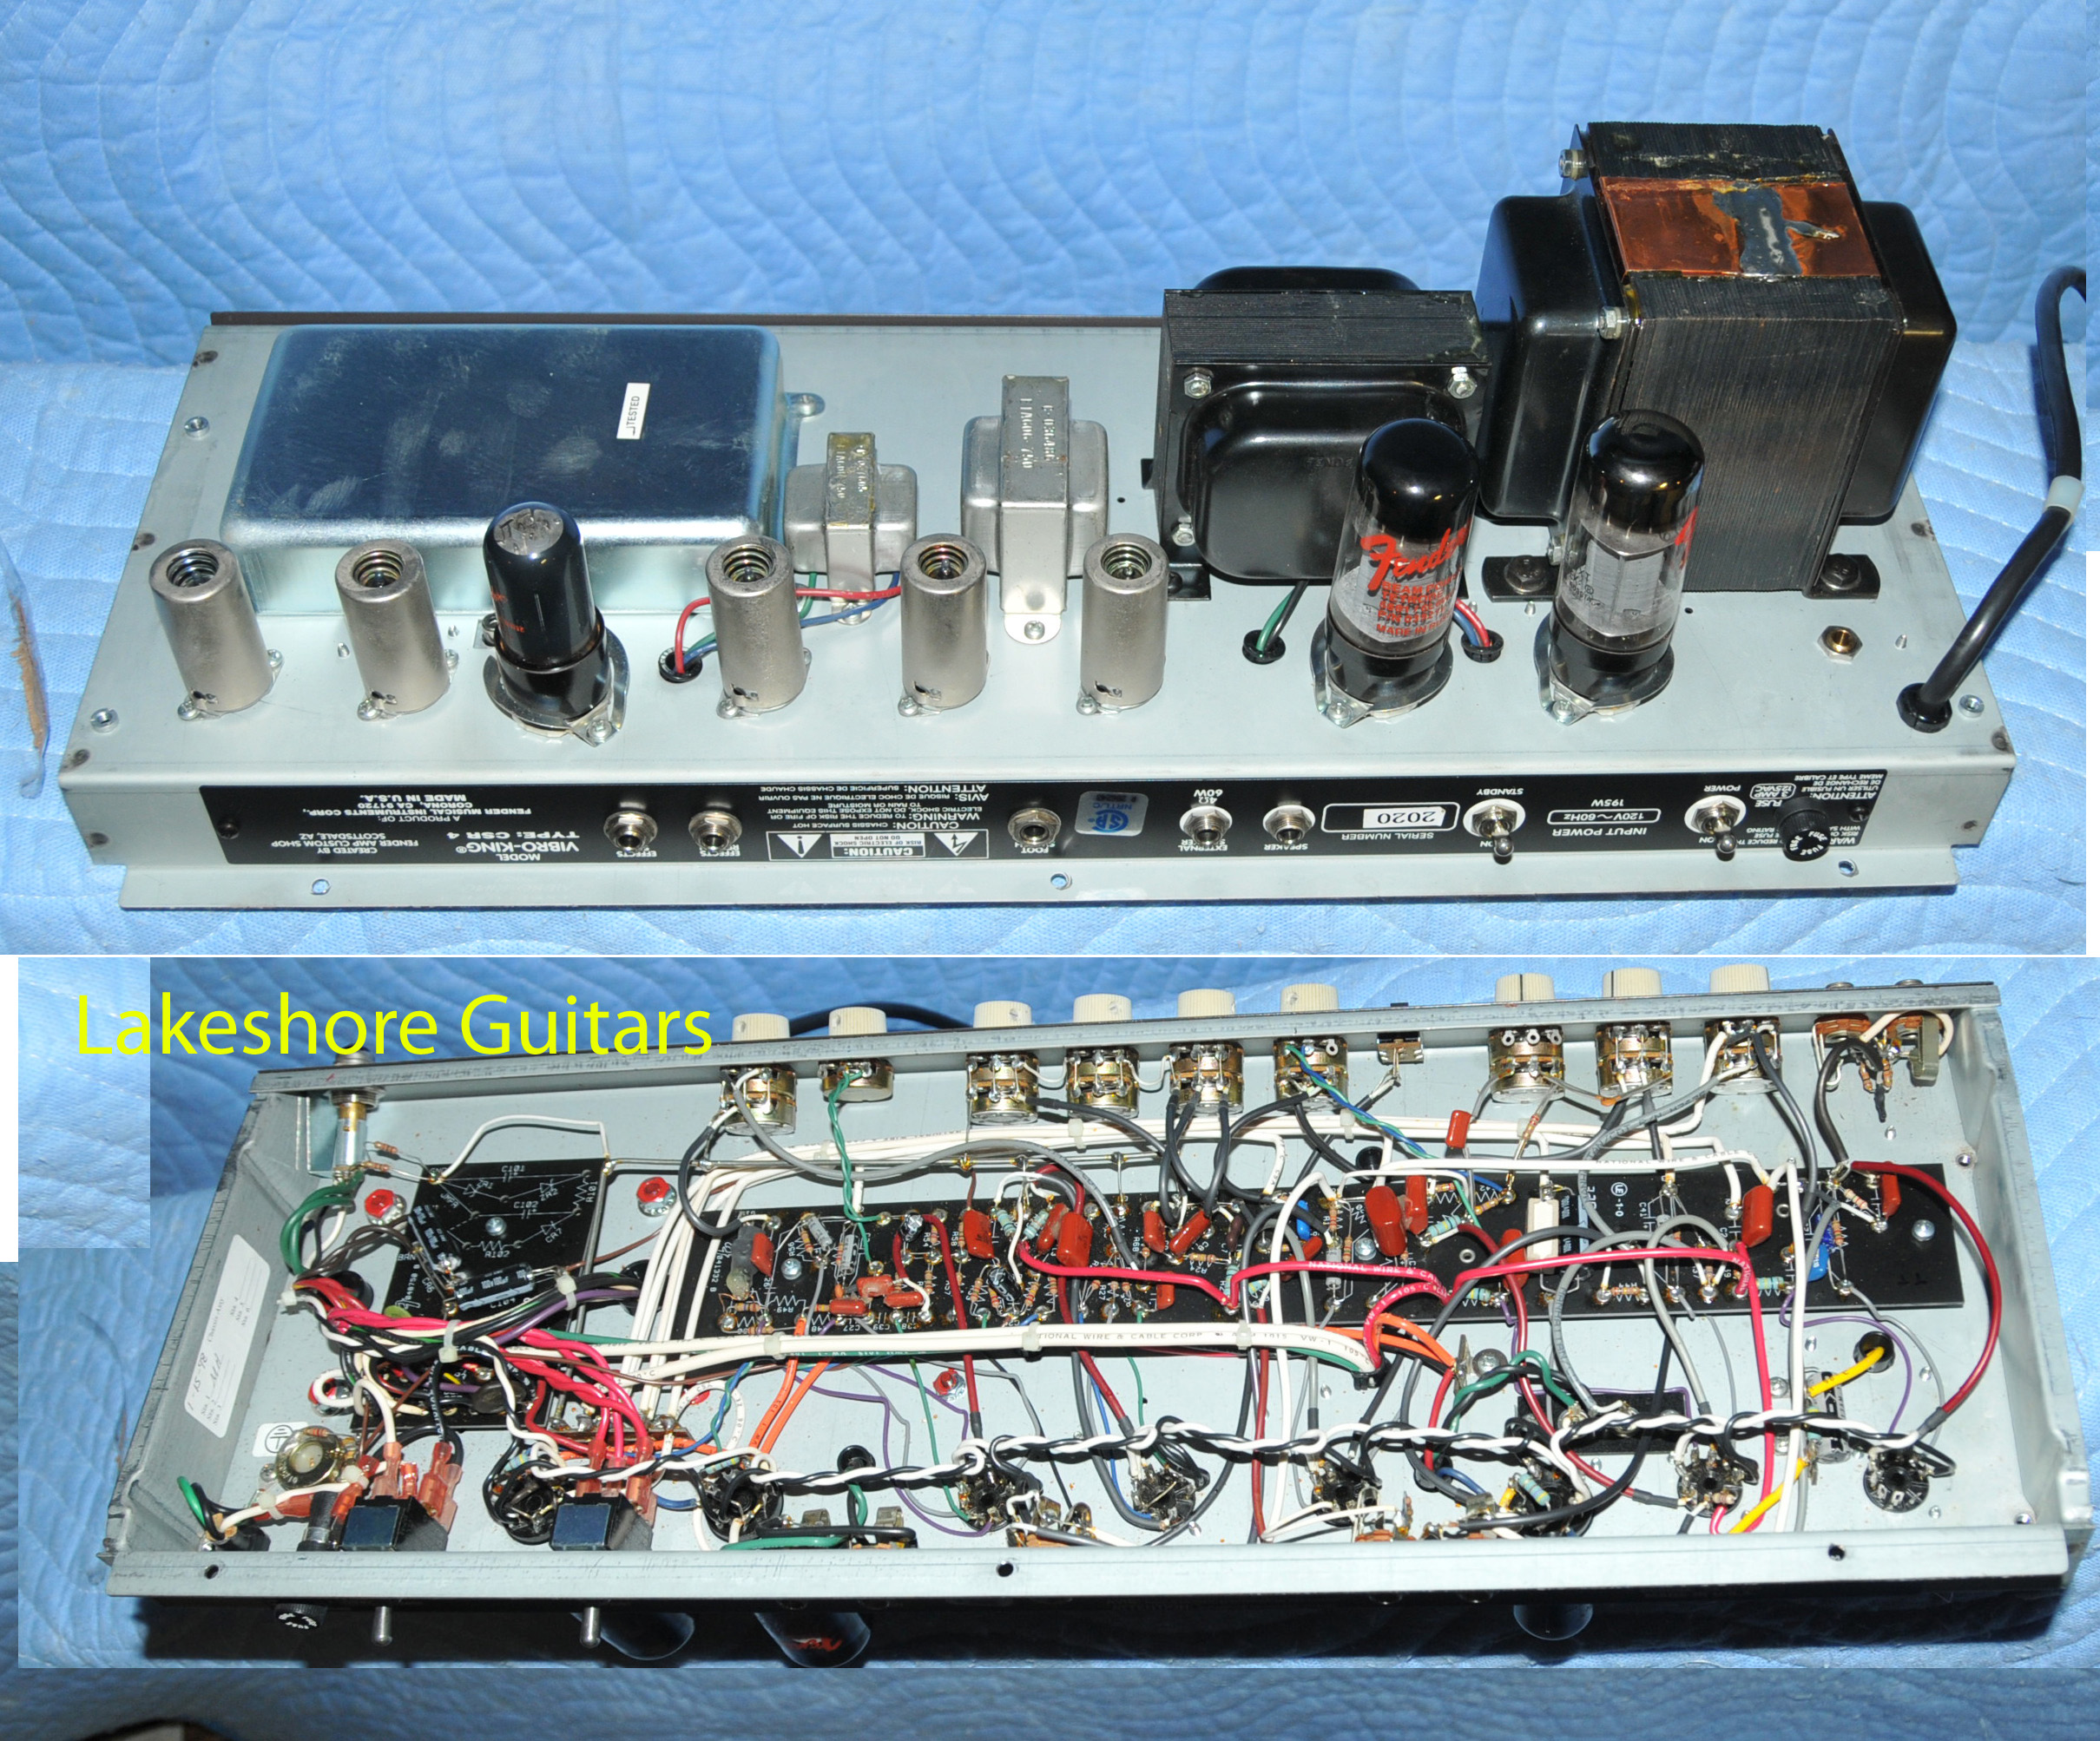 Fender Vibro King Wiring Diagram Posts Rs Guitarworks Diagrams 1998 Blond U003e Amps Preamps Lakeshore Guitars Sunburst